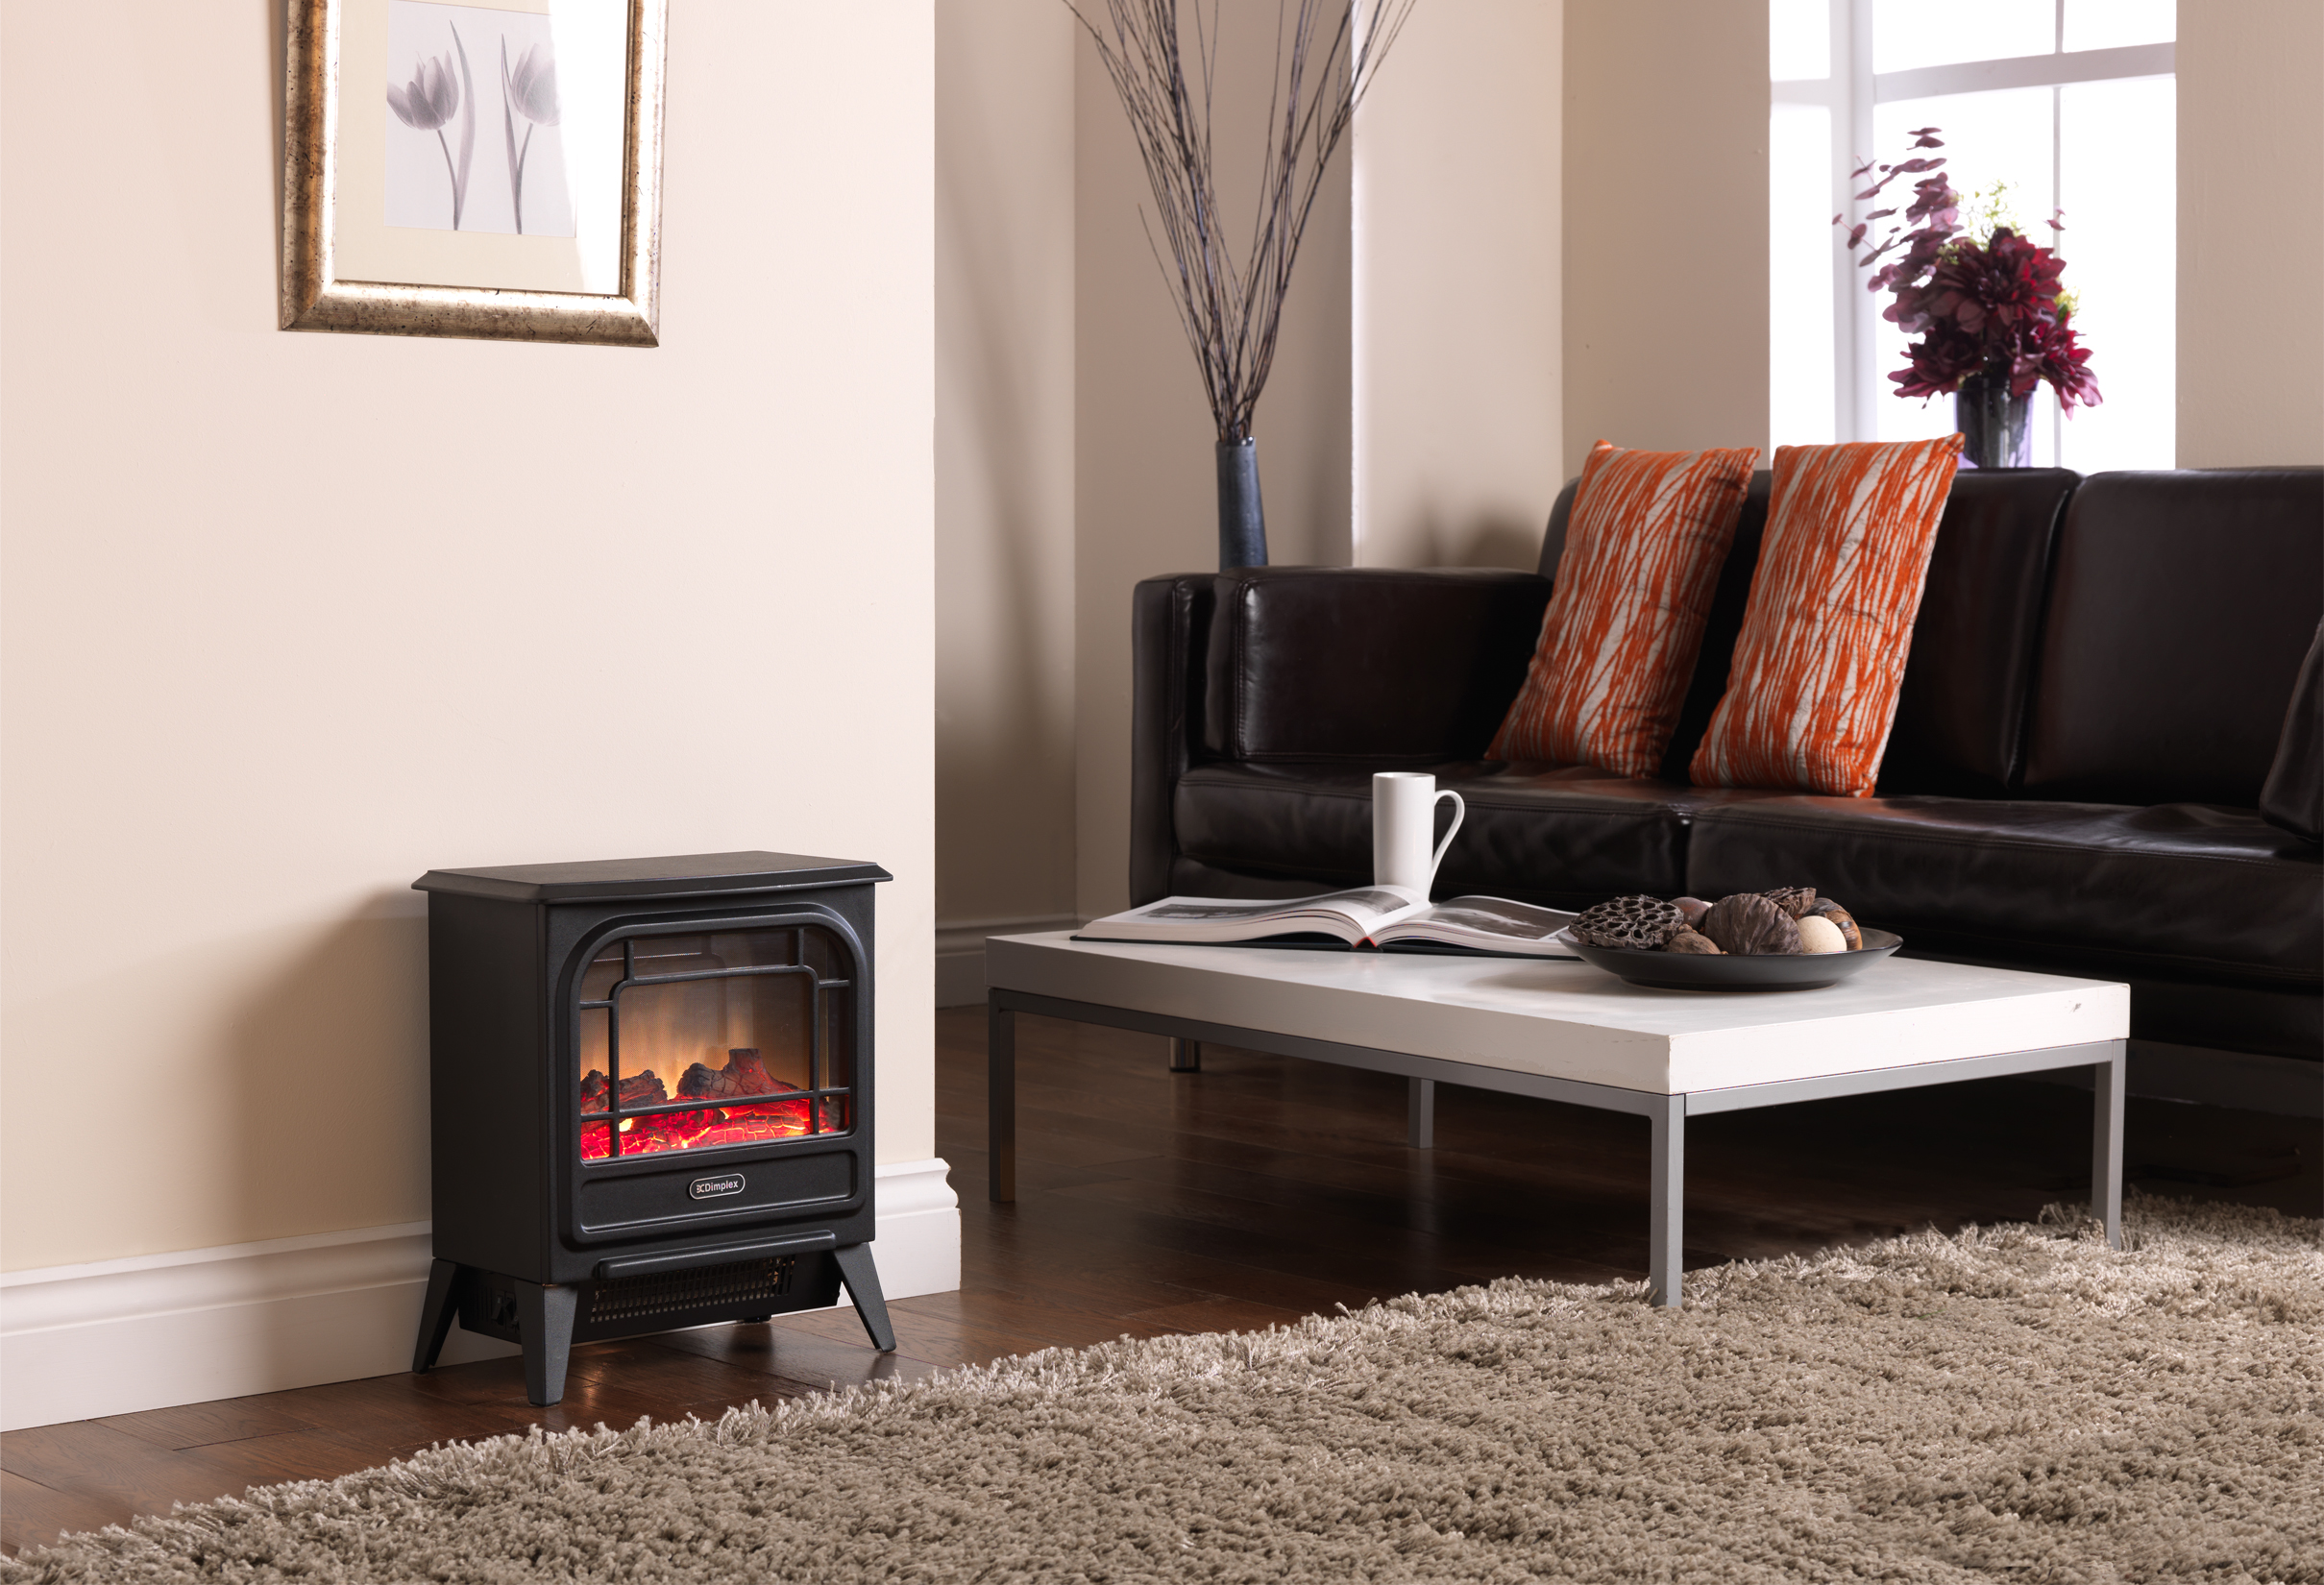 Dimplex Micro Stove makes a small room special